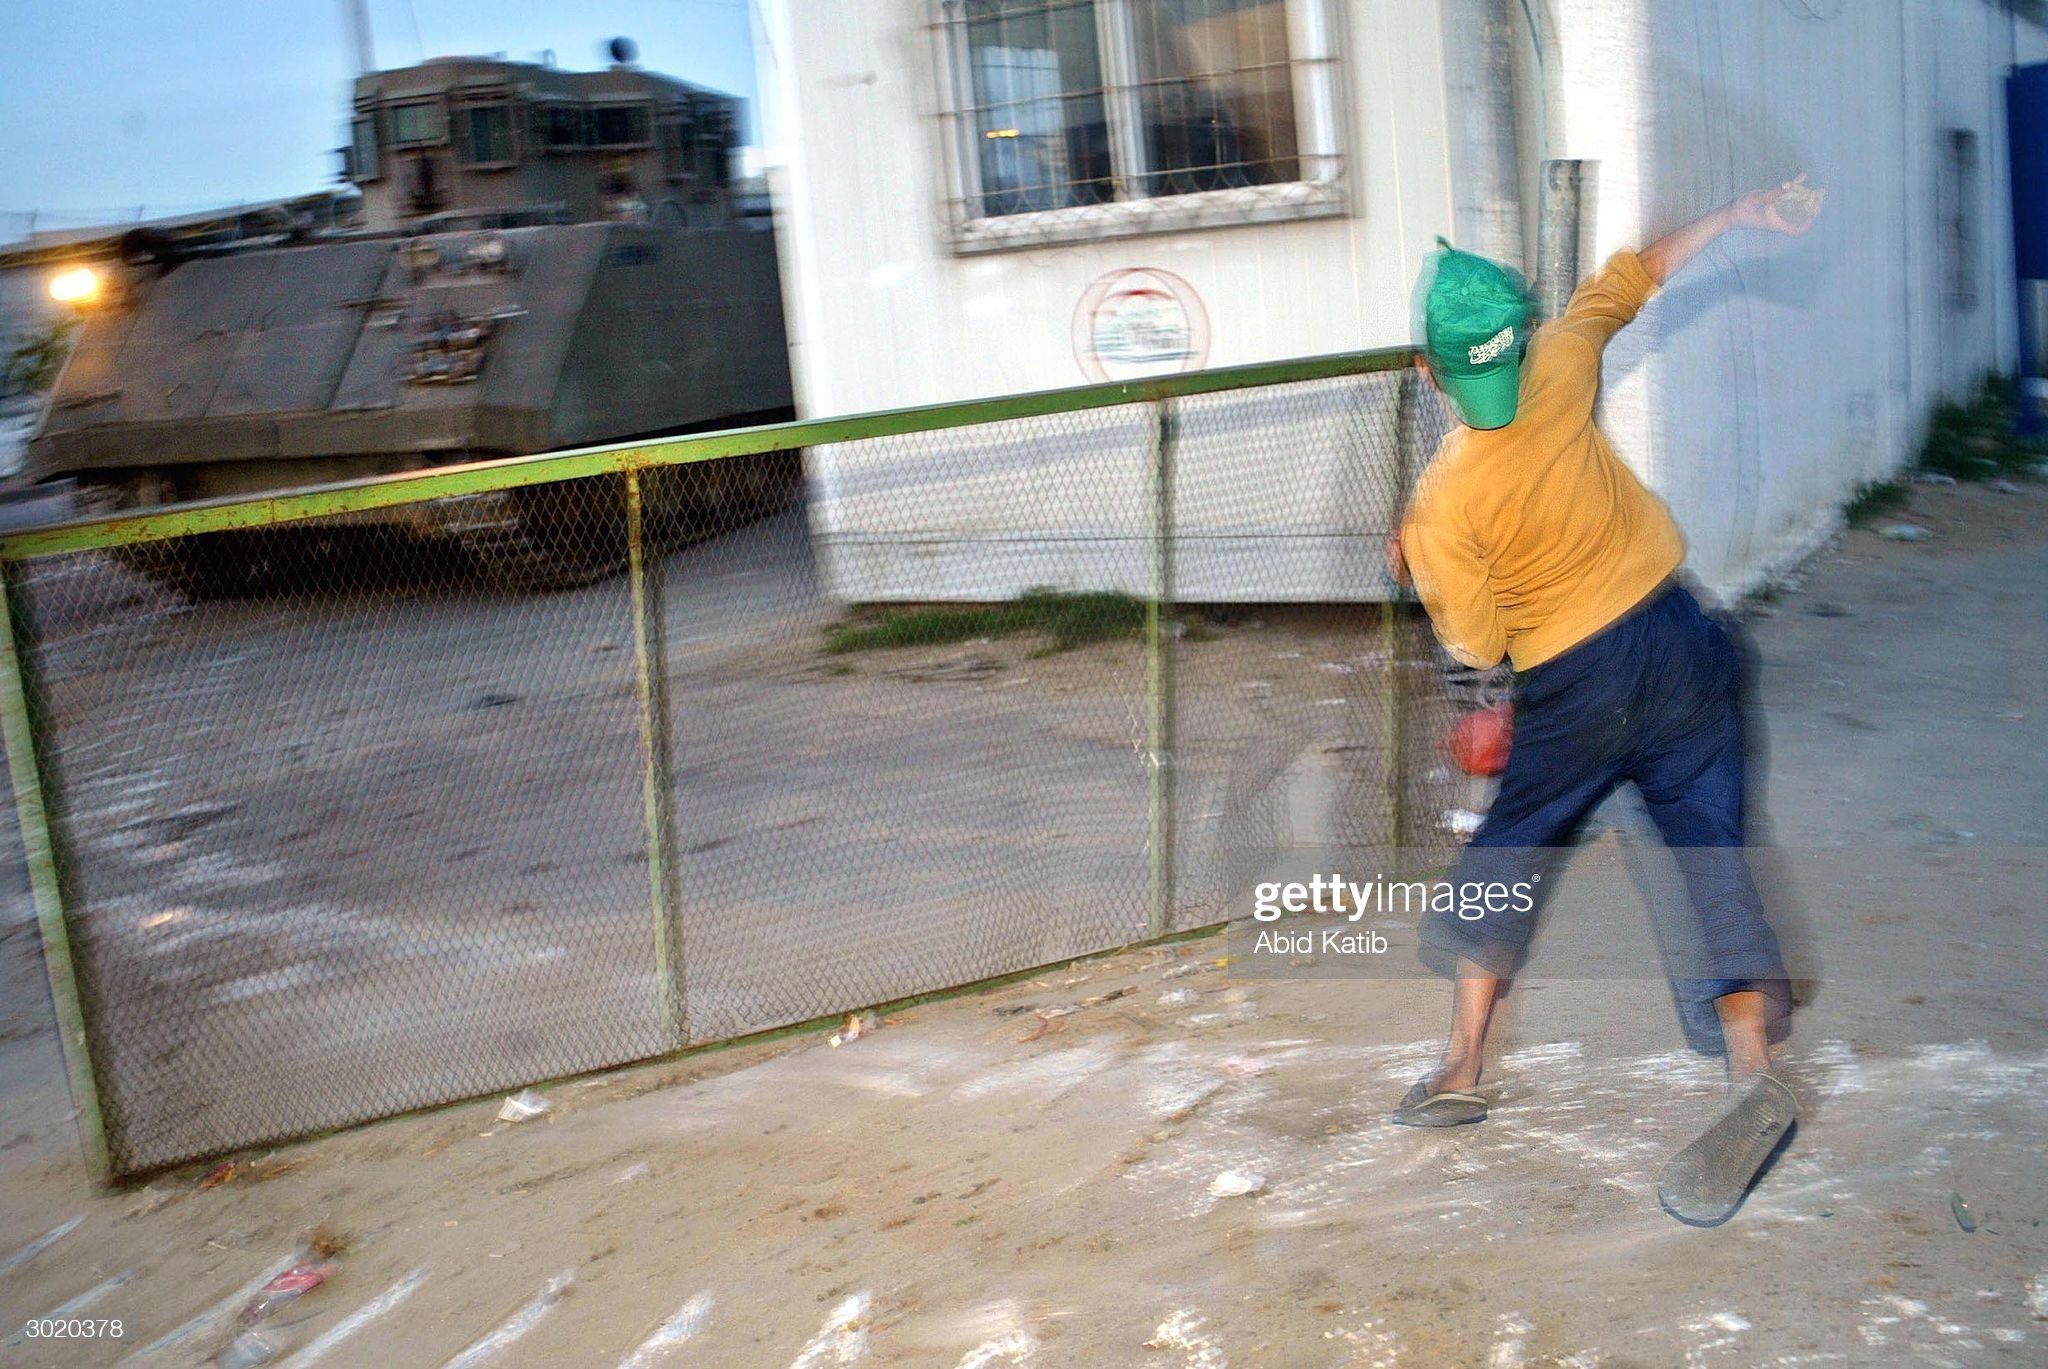 https://media.gettyimages.com/photos/palestinian-boy-throws-stones-towards-an-israeli-tank-while-destroy-picture-id3020378?s=2048x2048